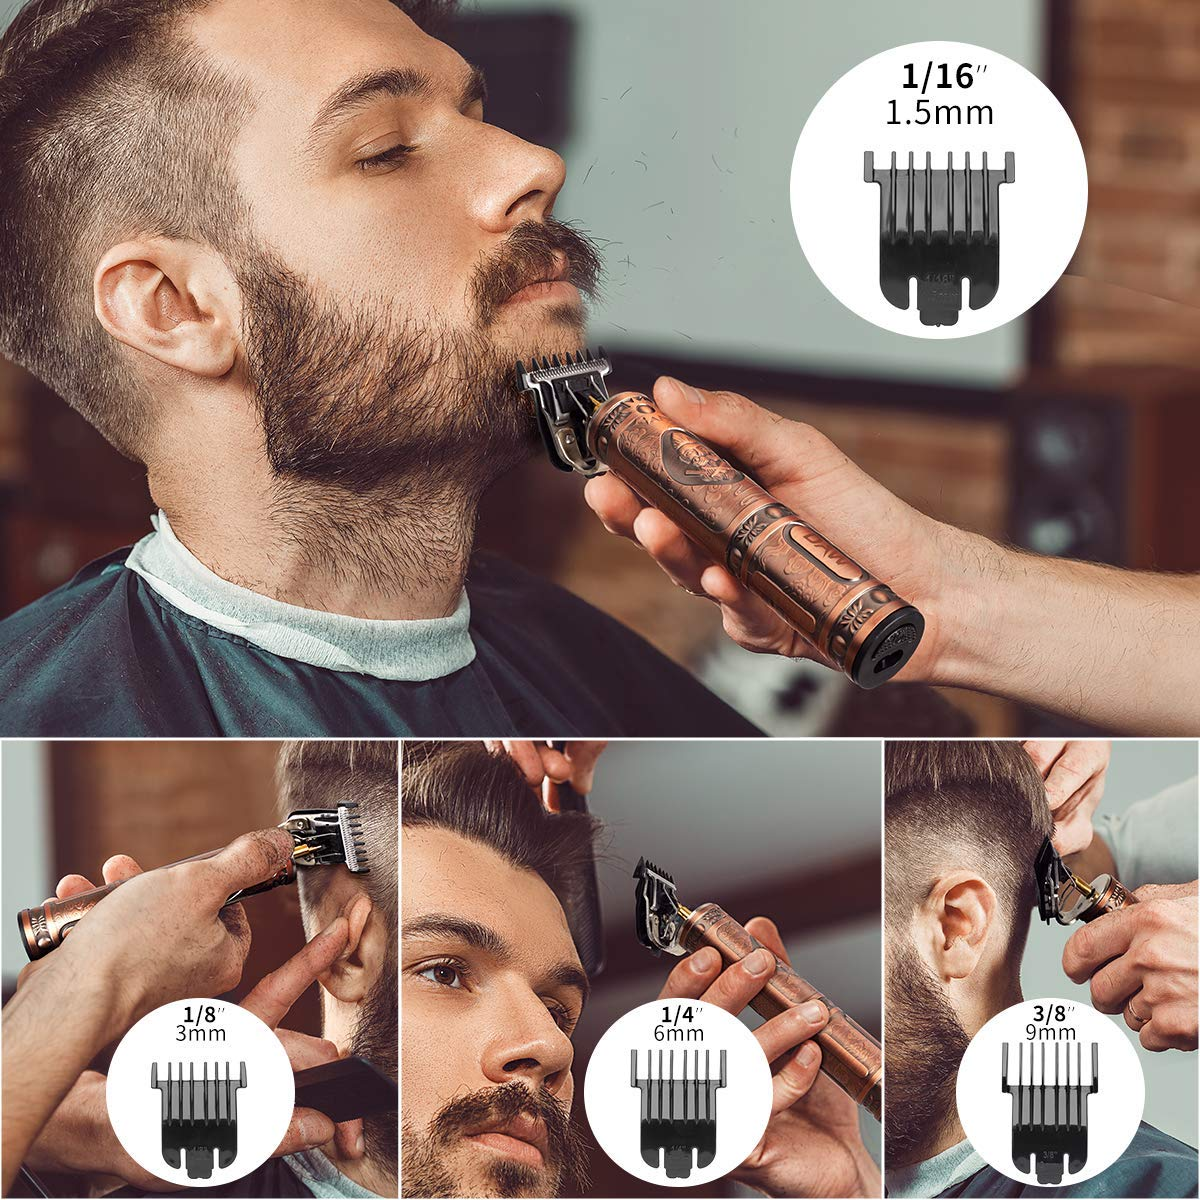 2020 New Rechargeable T-blade Men's Hair Clipper